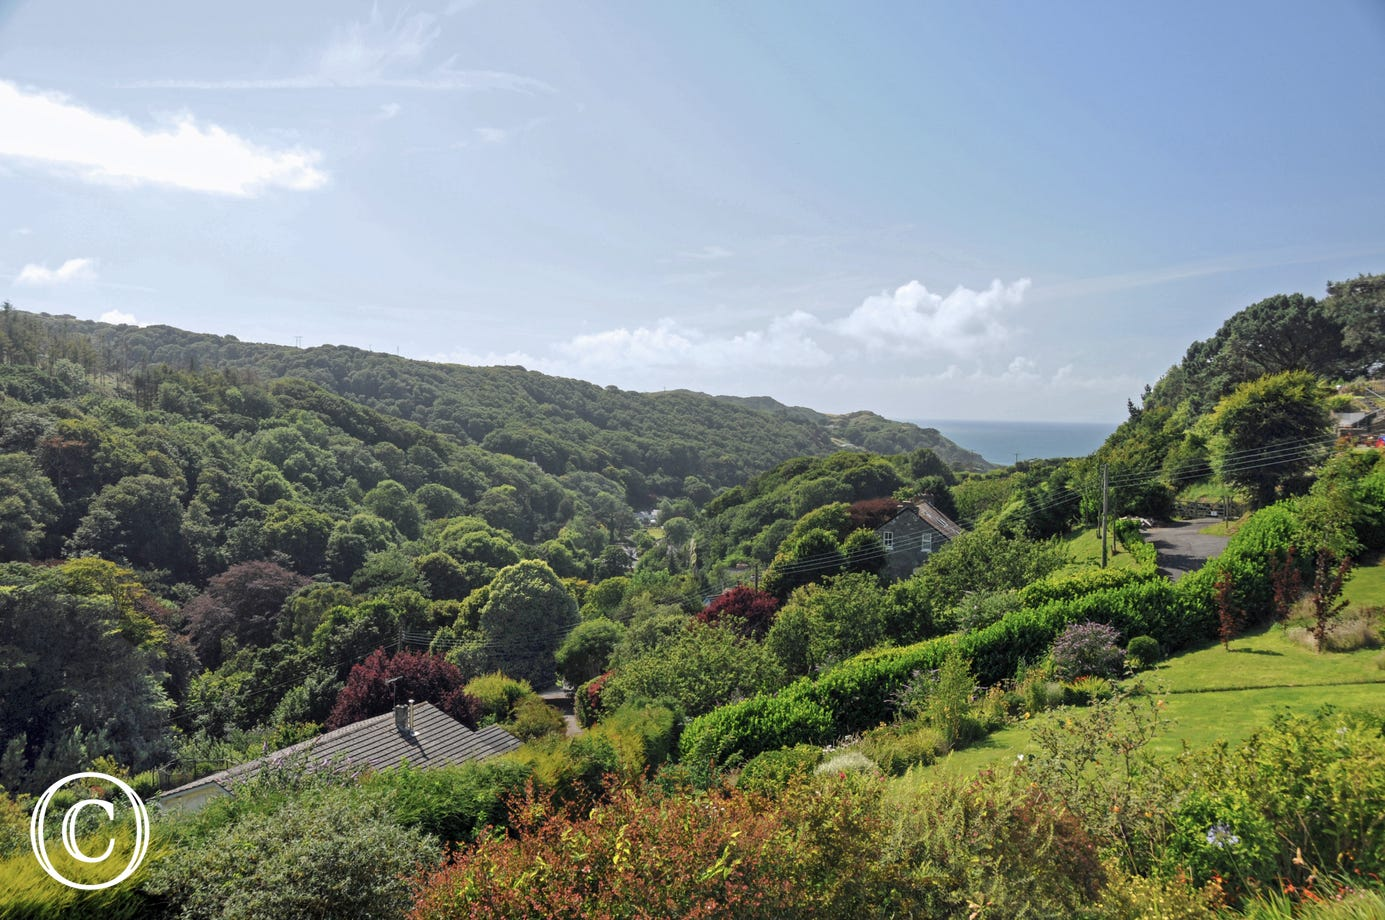 Stunning views across the lush green wooded valley and distant sea views